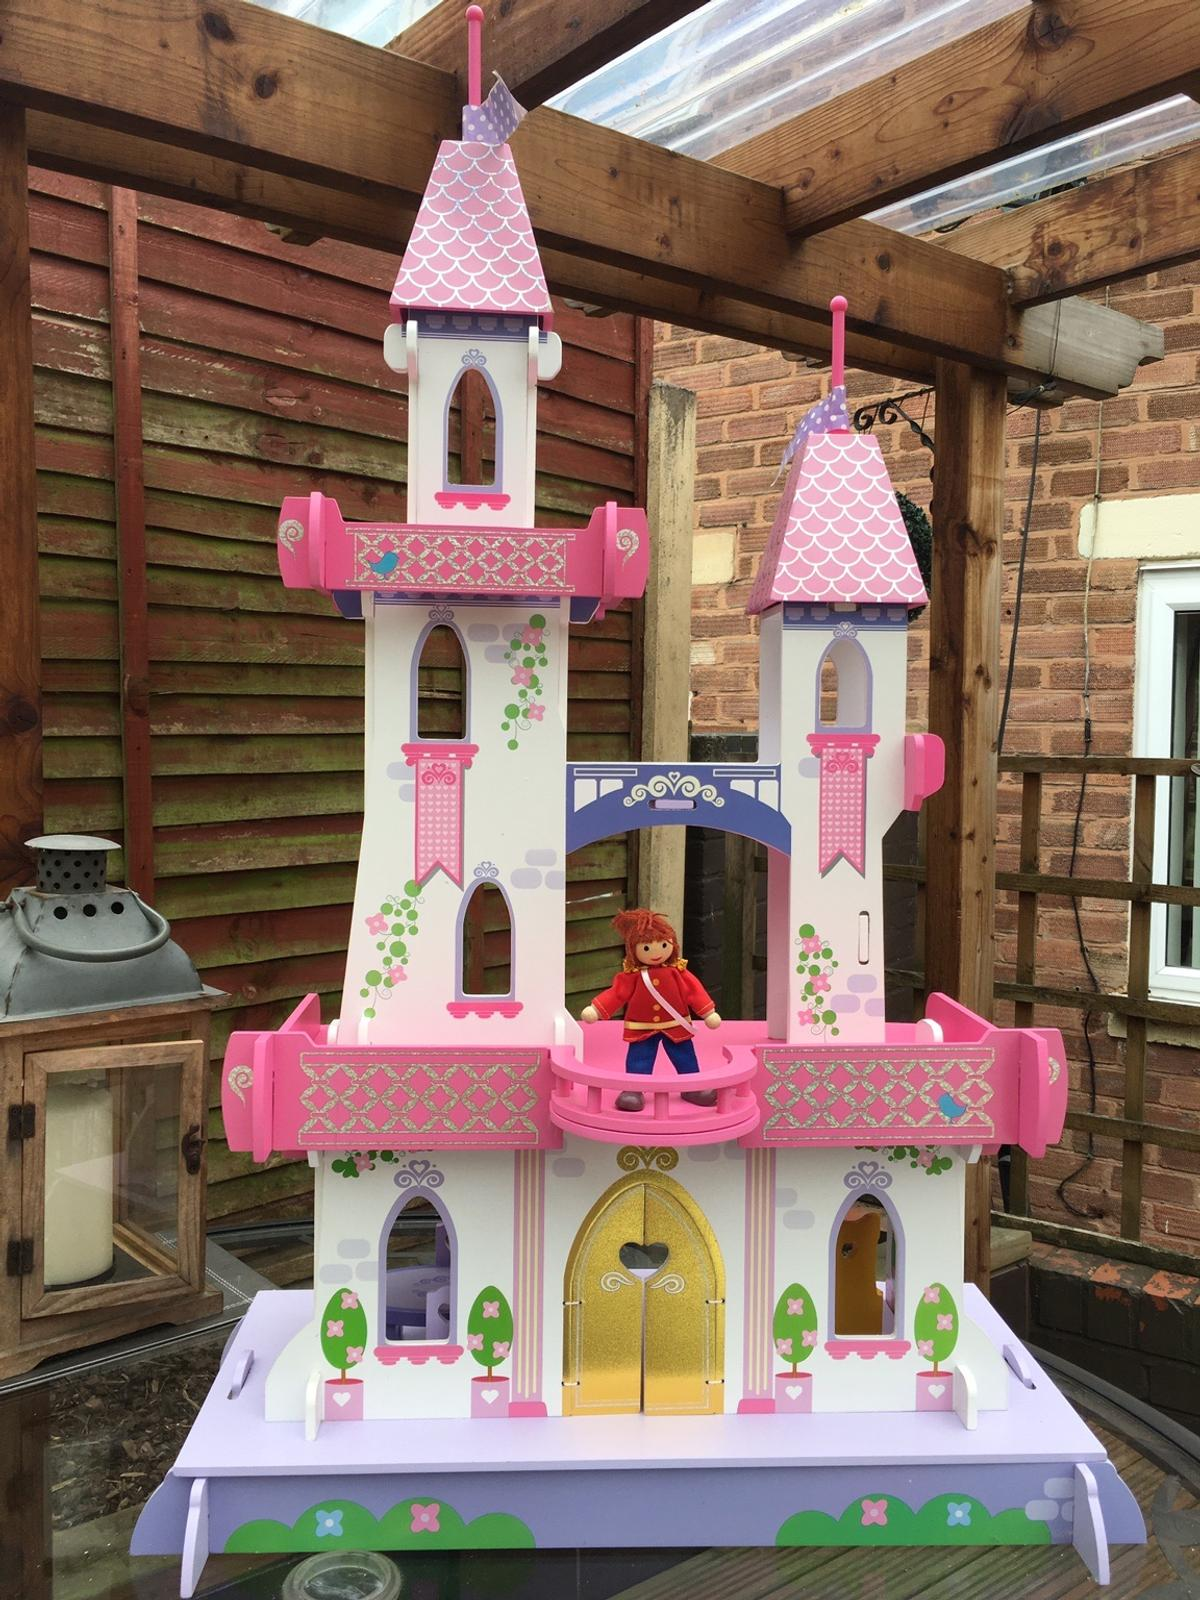 ELC castle with princess, prince characters, etc.